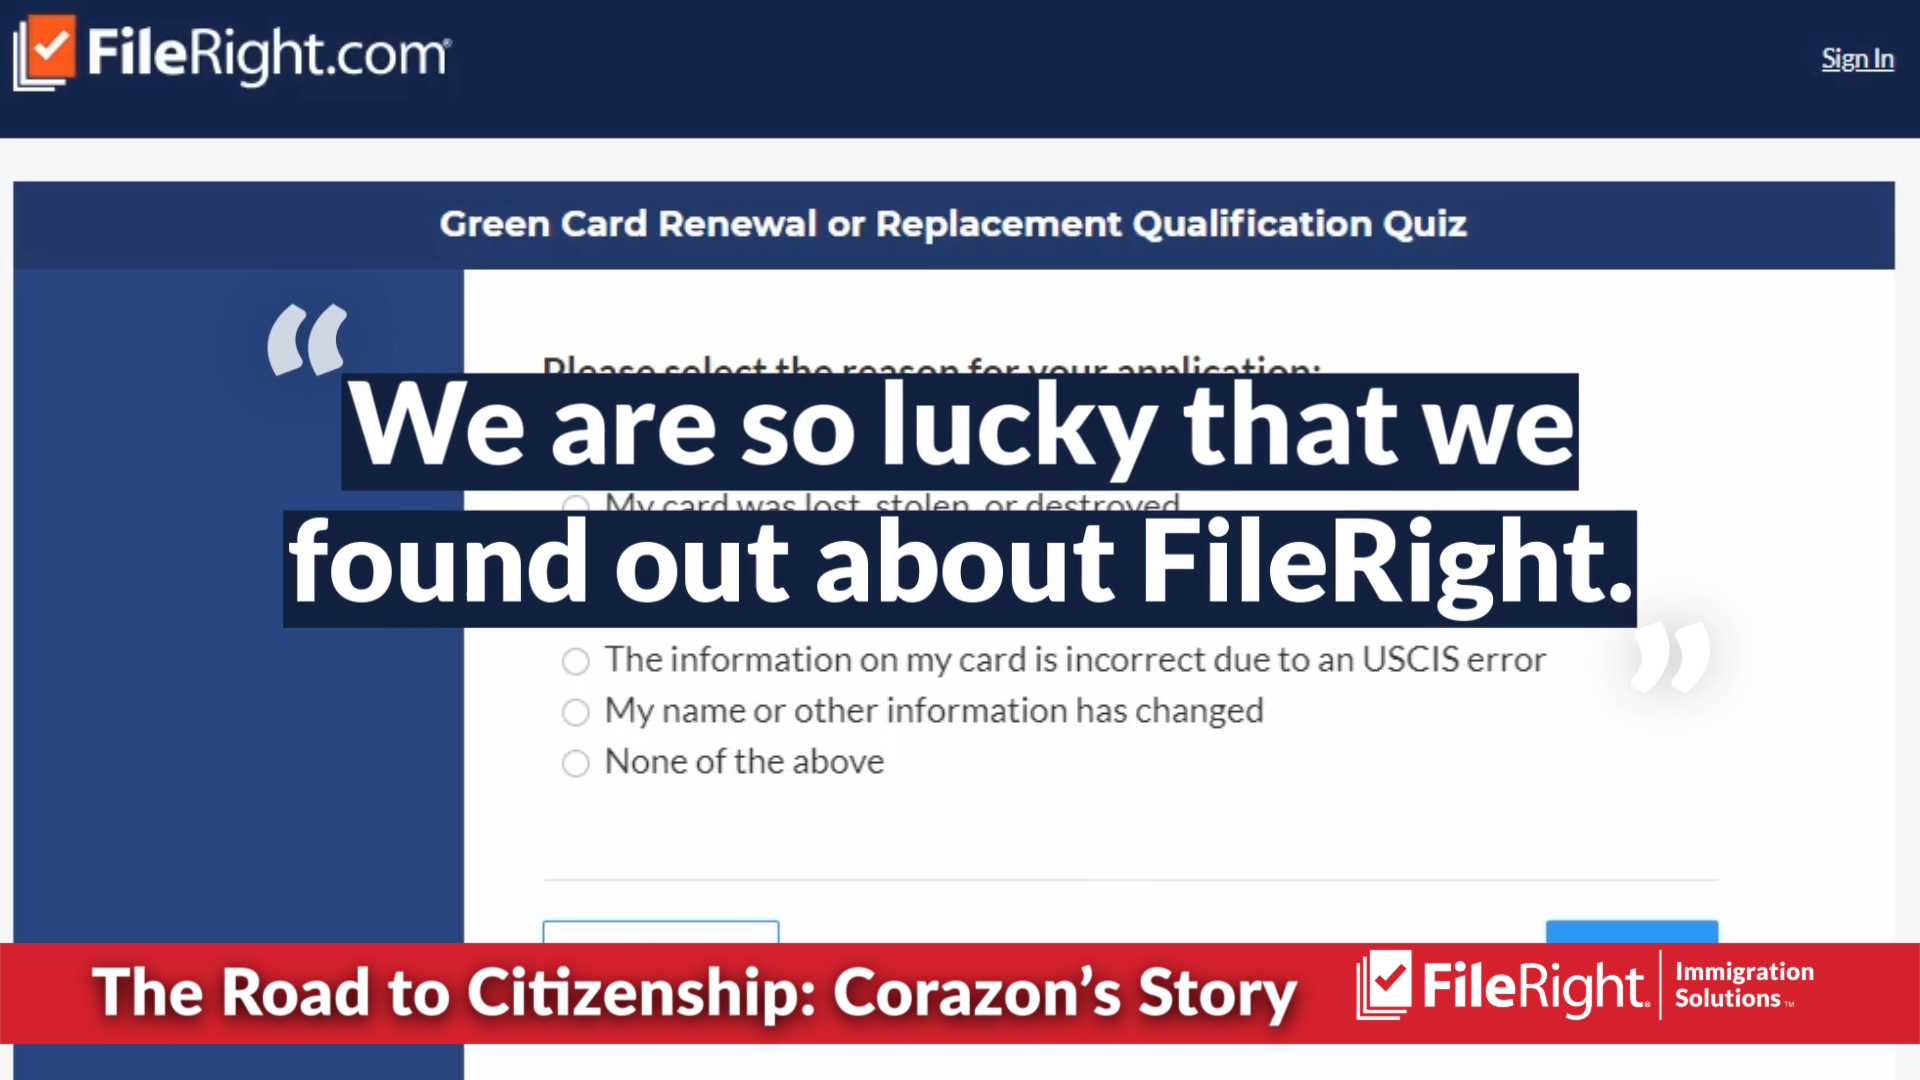 Corazon used FileRight for her green card renewal and now wants to become a U.S. citizen.